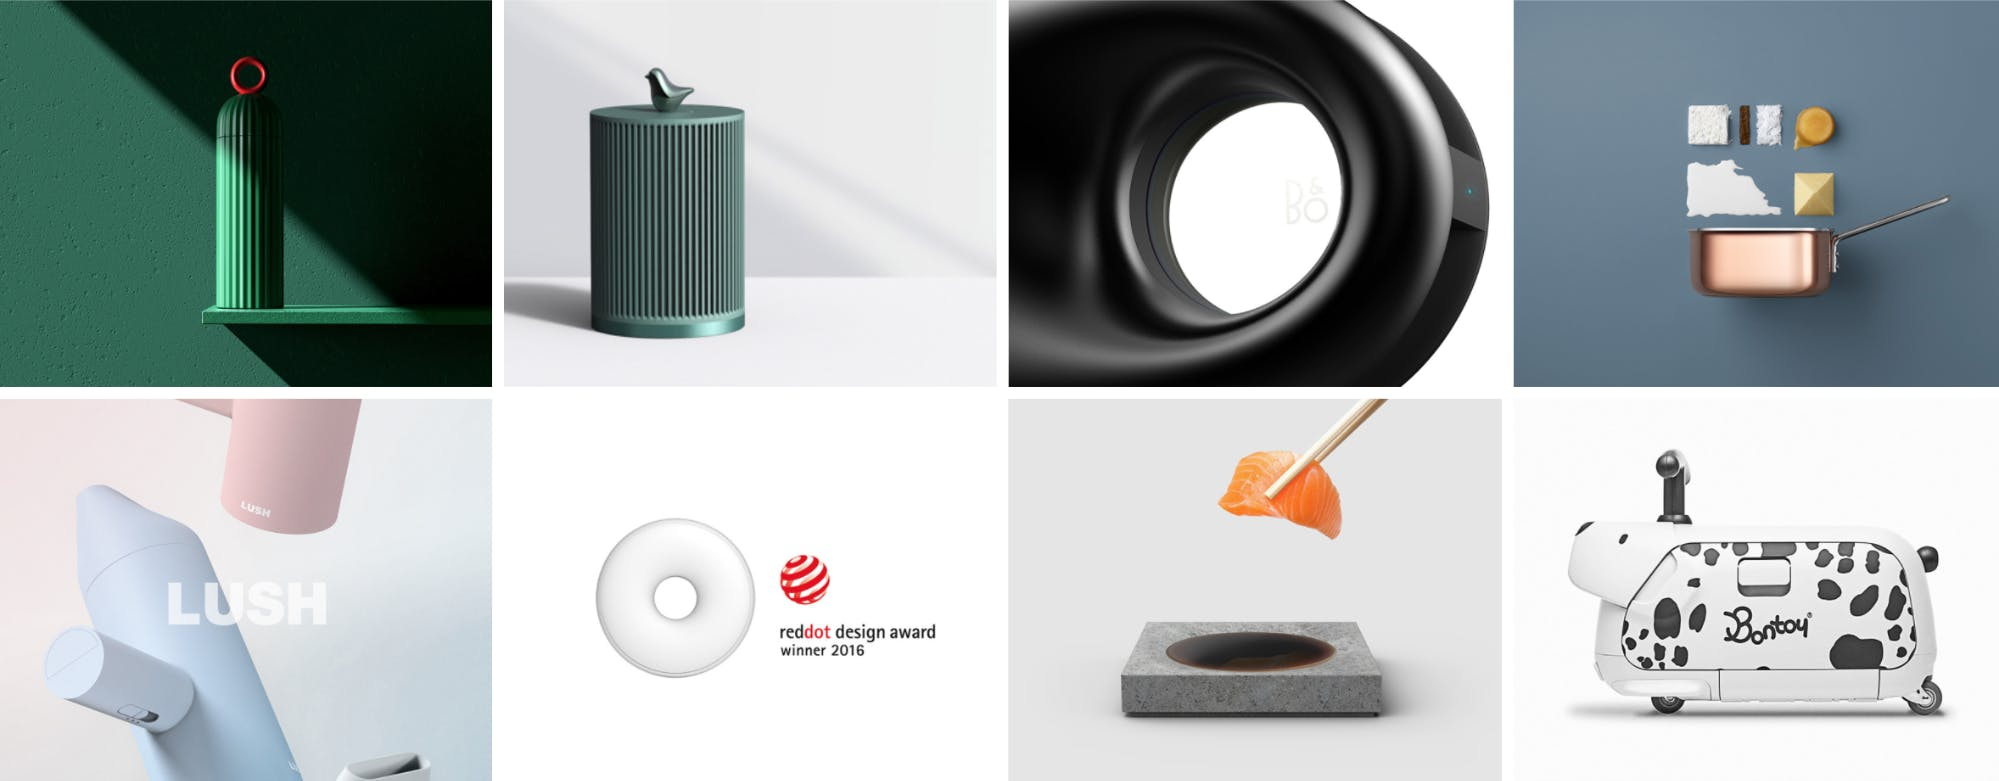 design physical products examples